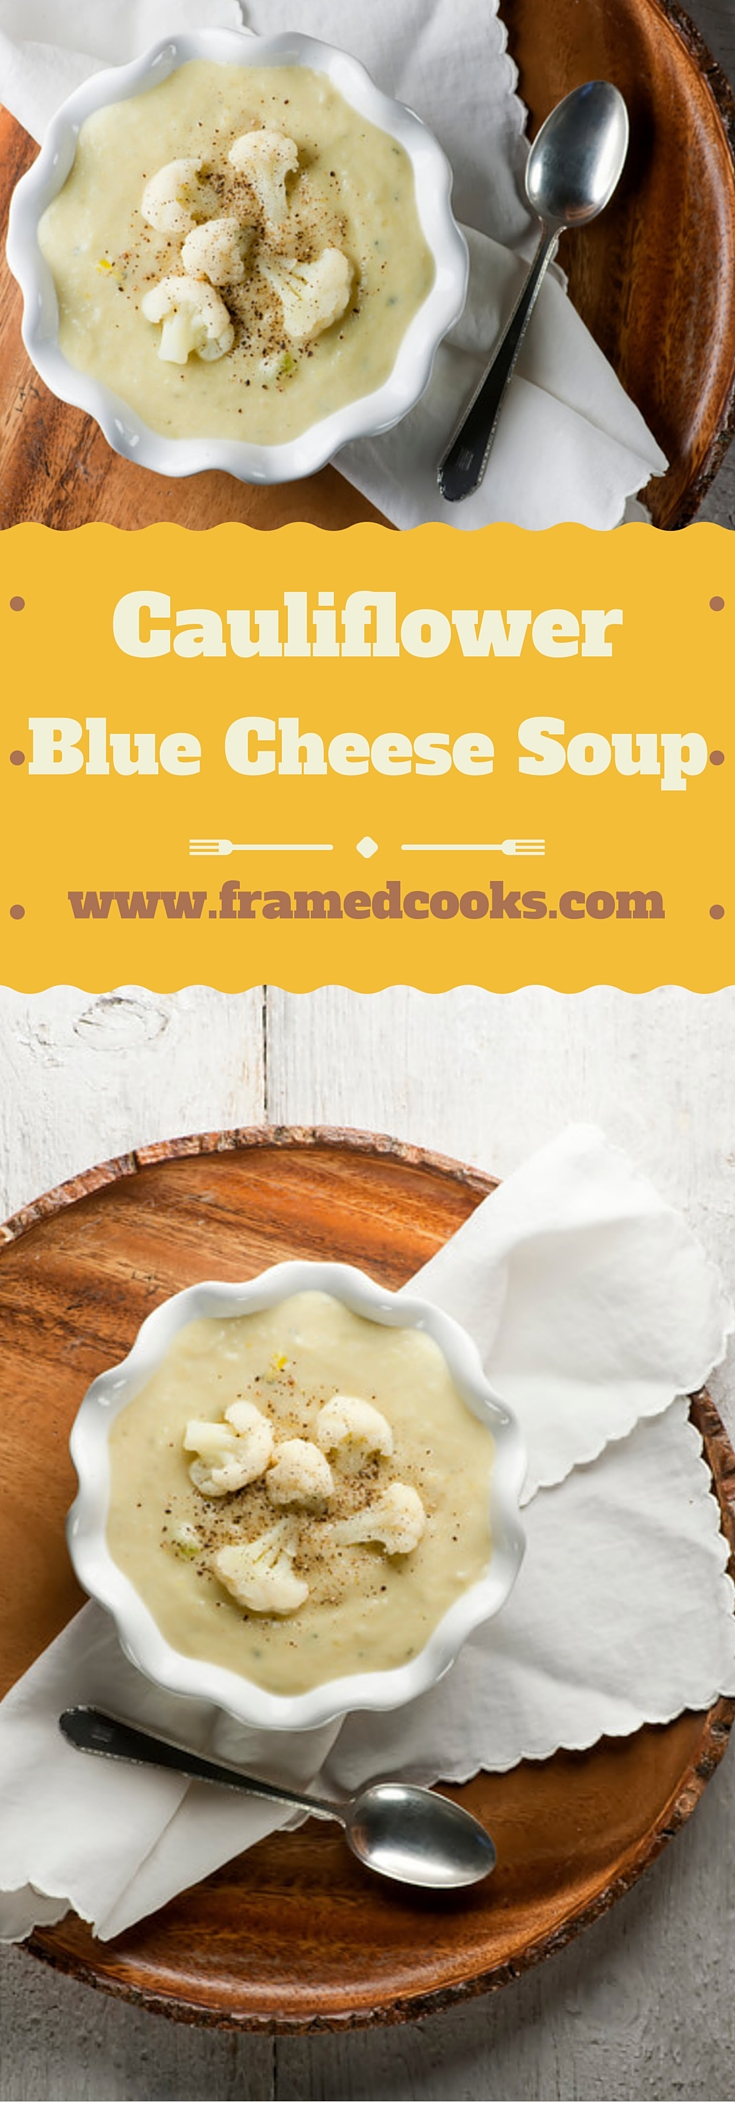 Cauliflower and blue cheese team up in this easy, creamy, tangy, hearty cauliflower blue cheese soup!